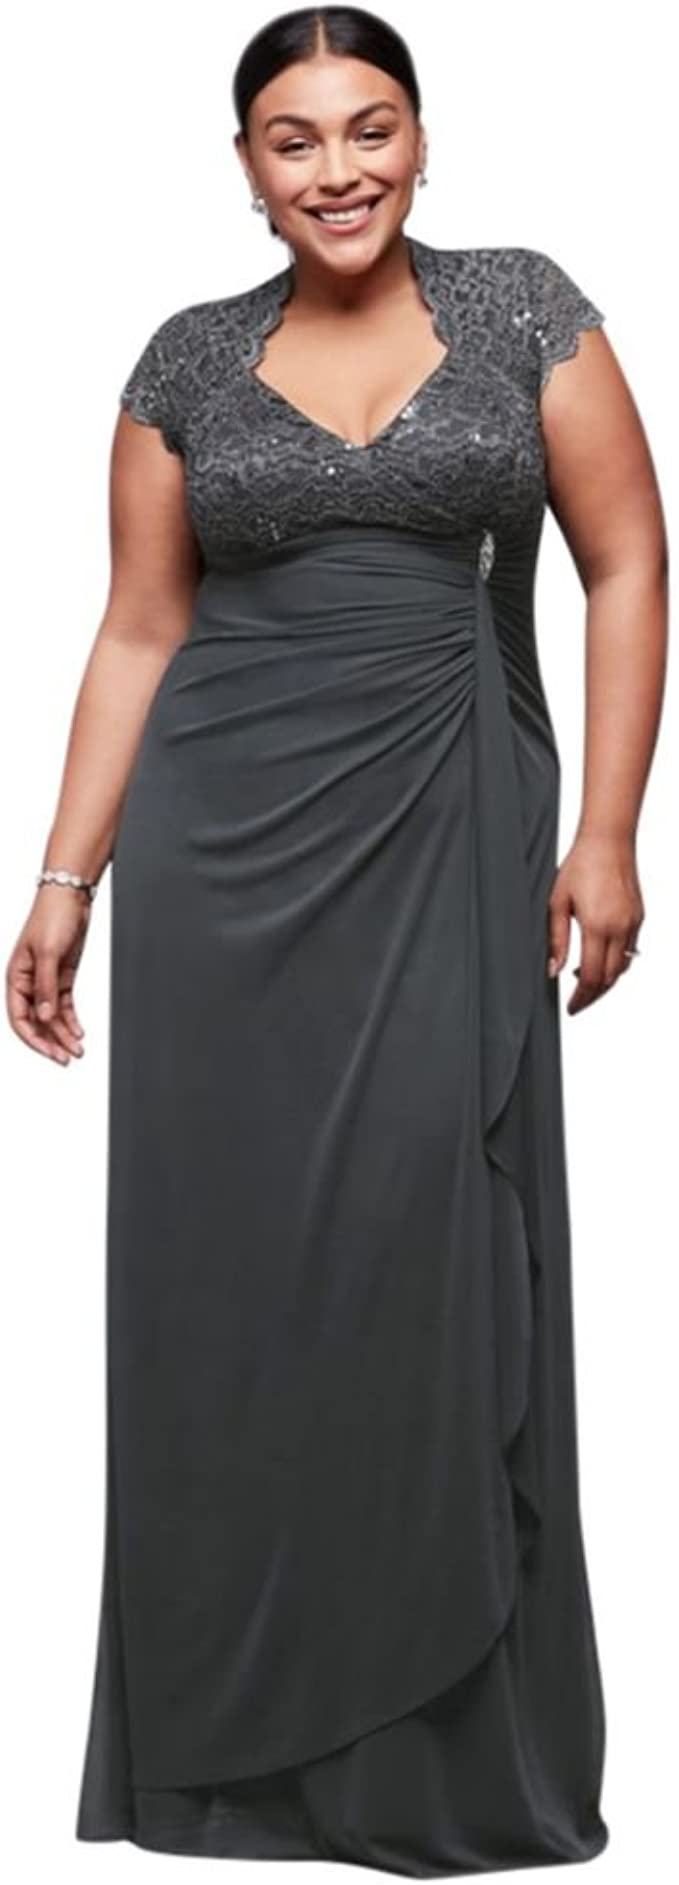 Textured Glitter Plus Size Mother of Bride//Groom Dress with Necklace Style 1873W